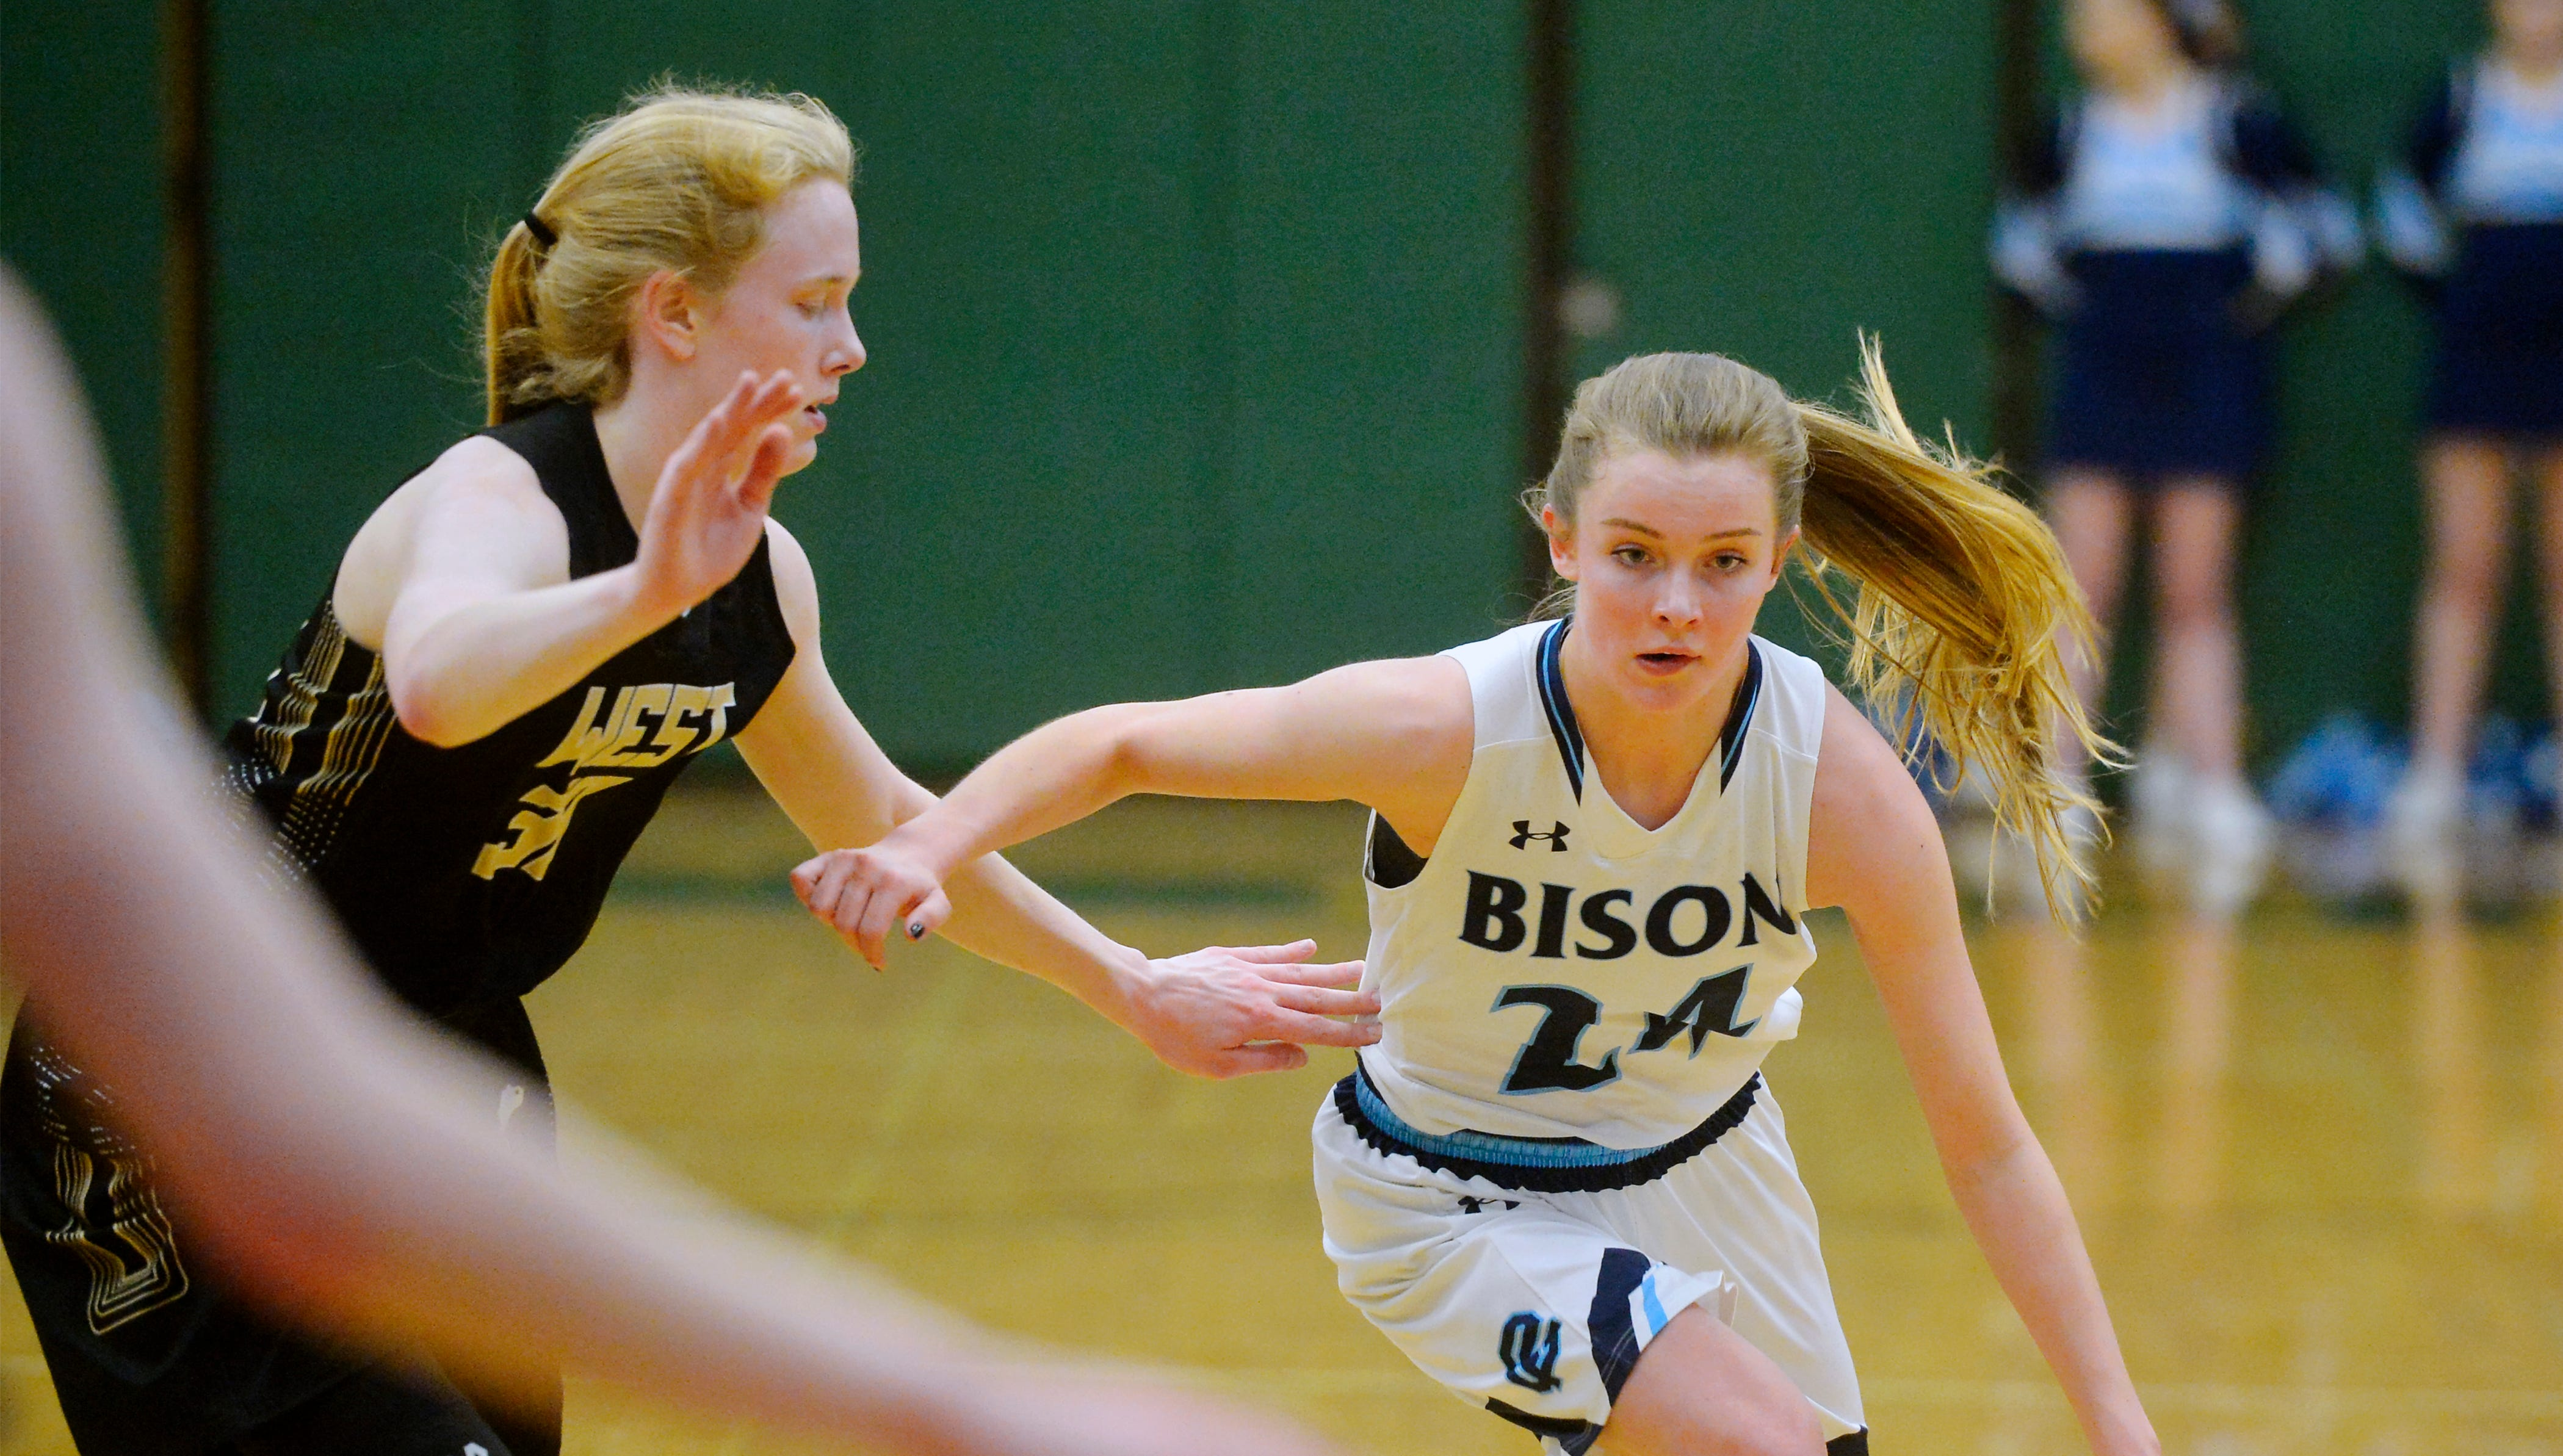 Stats and stories from the State Class AA girls basketball tourney in Butte